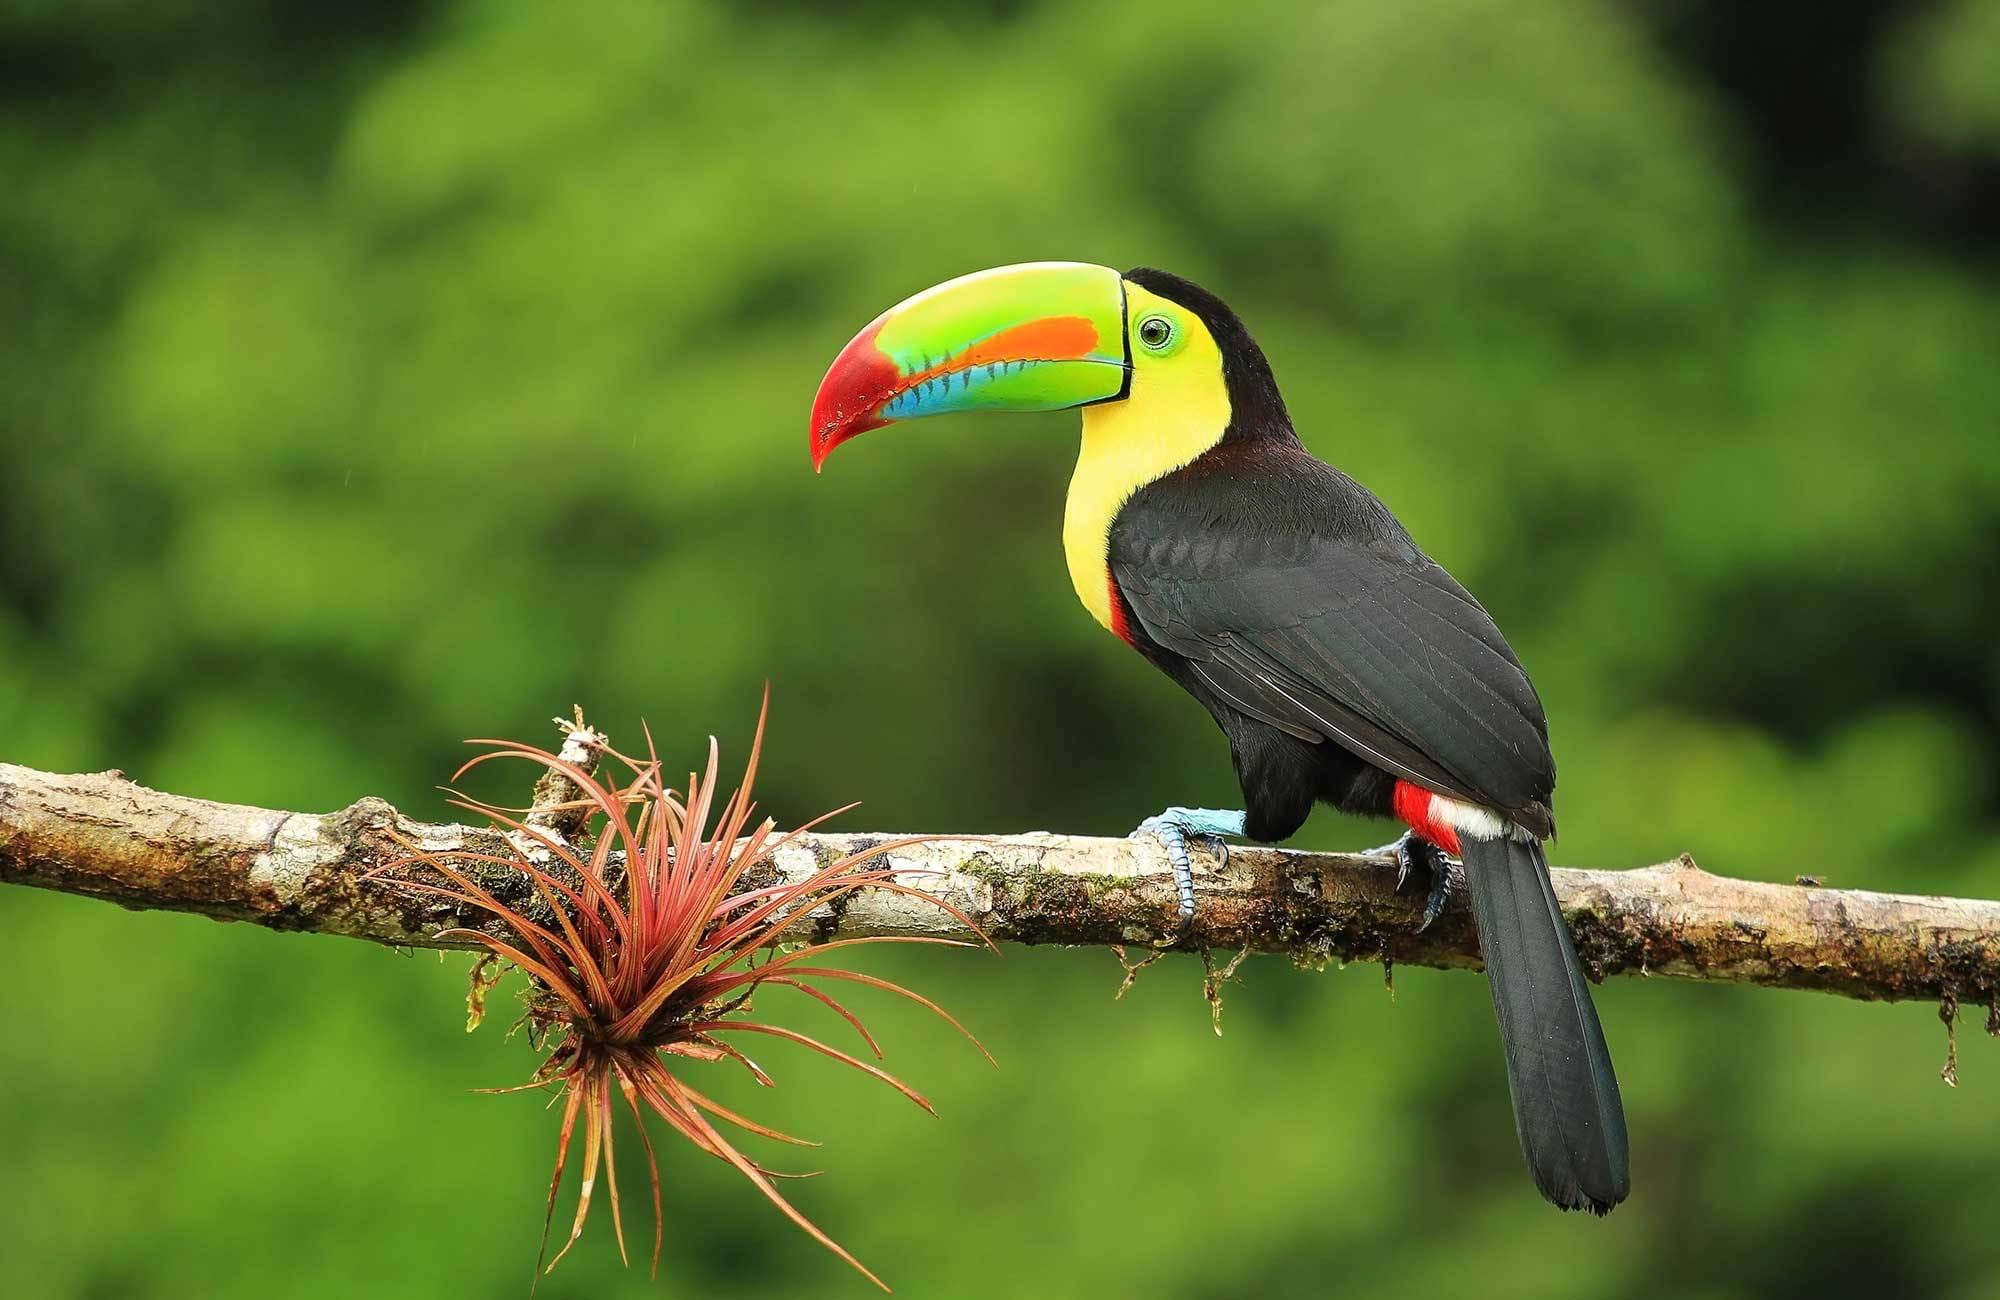 central-america-costa-rica-hornbill-bird-cover